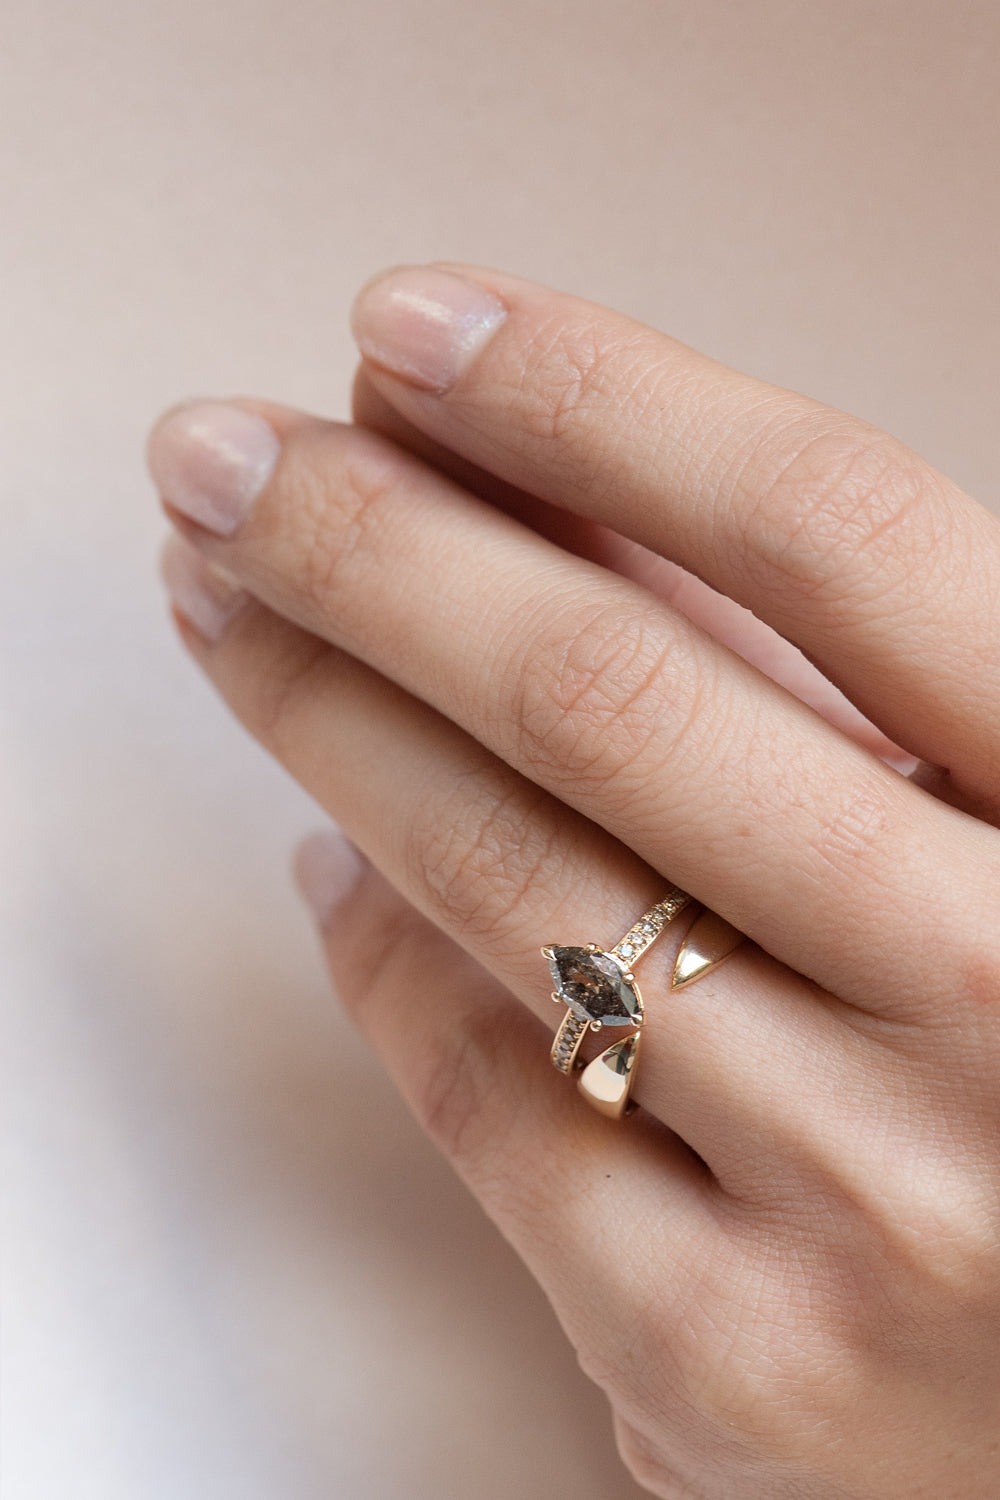 Eon Ring - Salt + Pepper Marquise Diamond